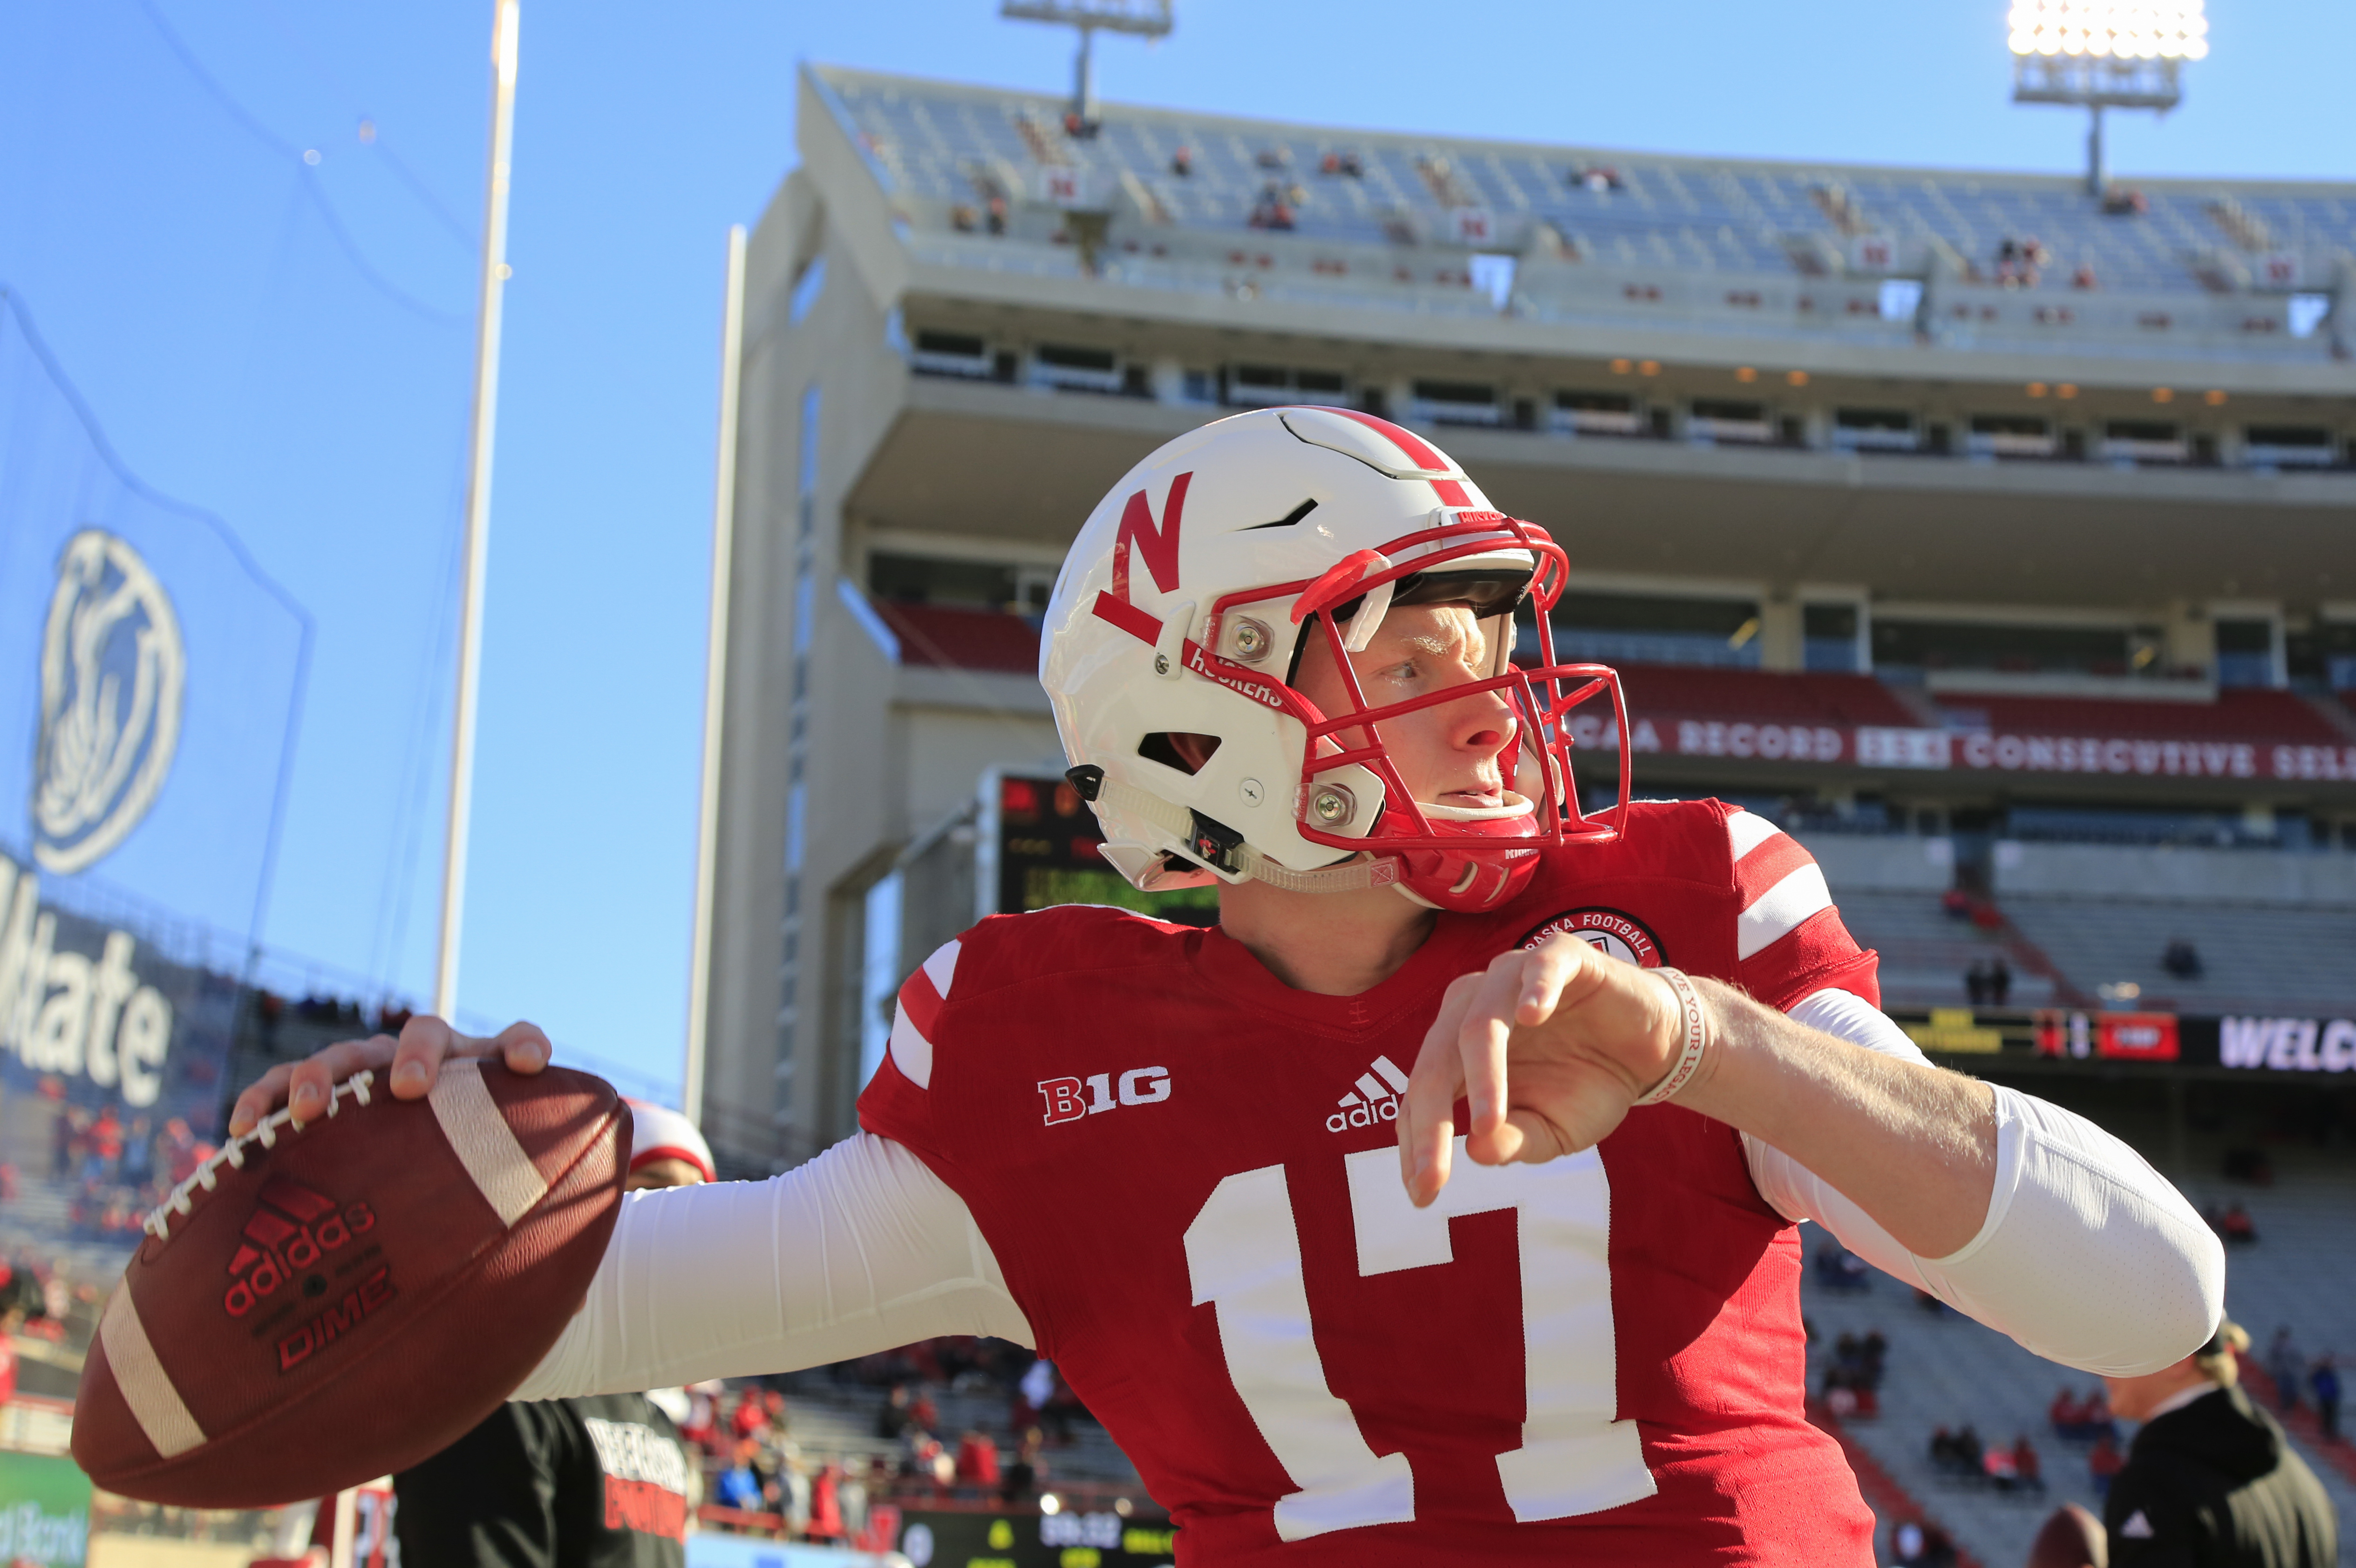 Nebraska quarterback Ryker Fyfe (17) throws before an NCAA college football game against Maryland in Lincoln, Neb., Saturday, Nov. 19, 2016. (AP Photo/Nati Harnik)